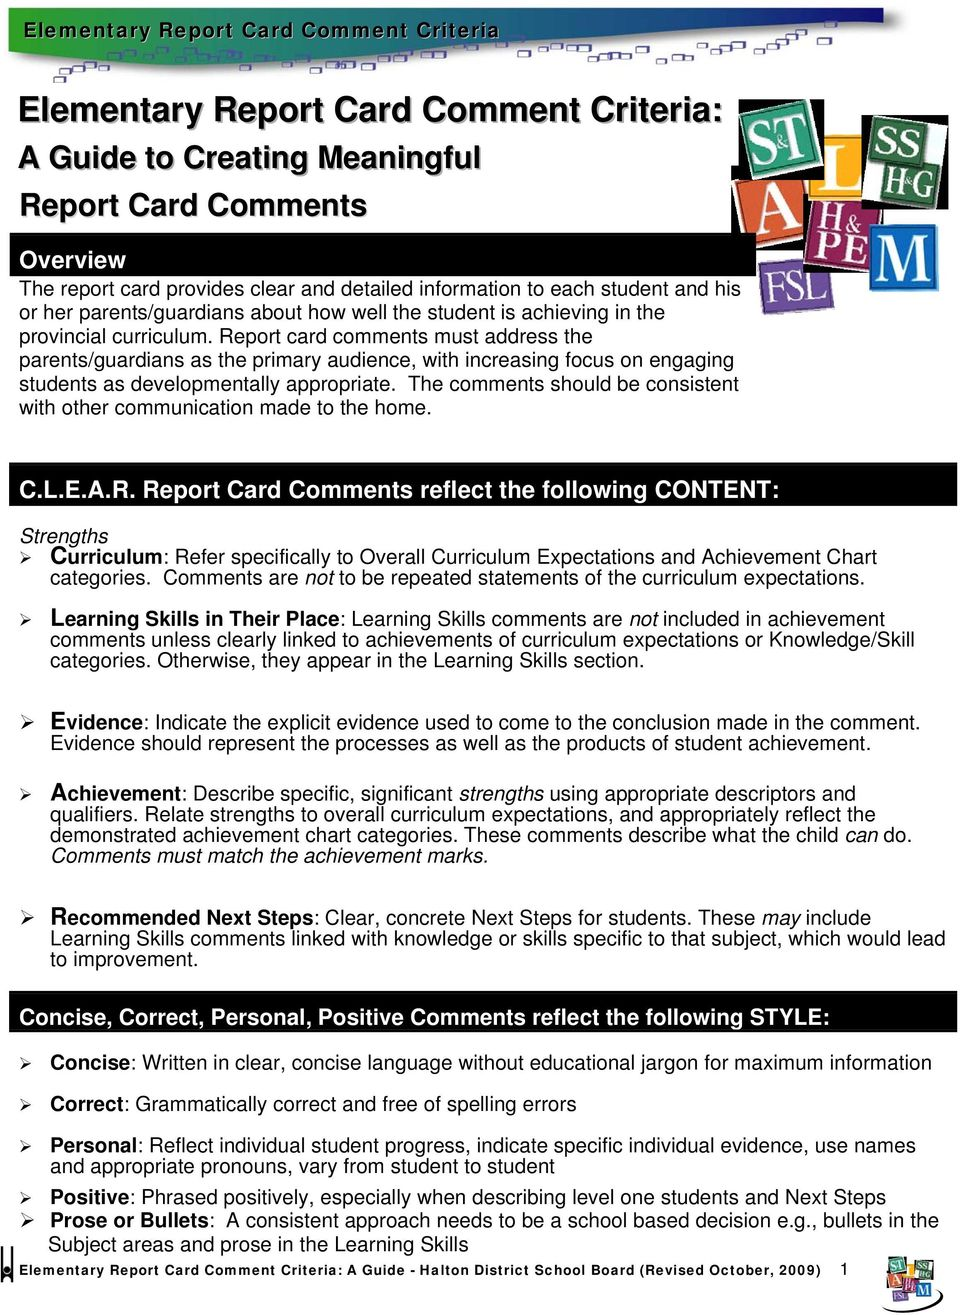 Elementary Report Card Comment Criteria - PDF